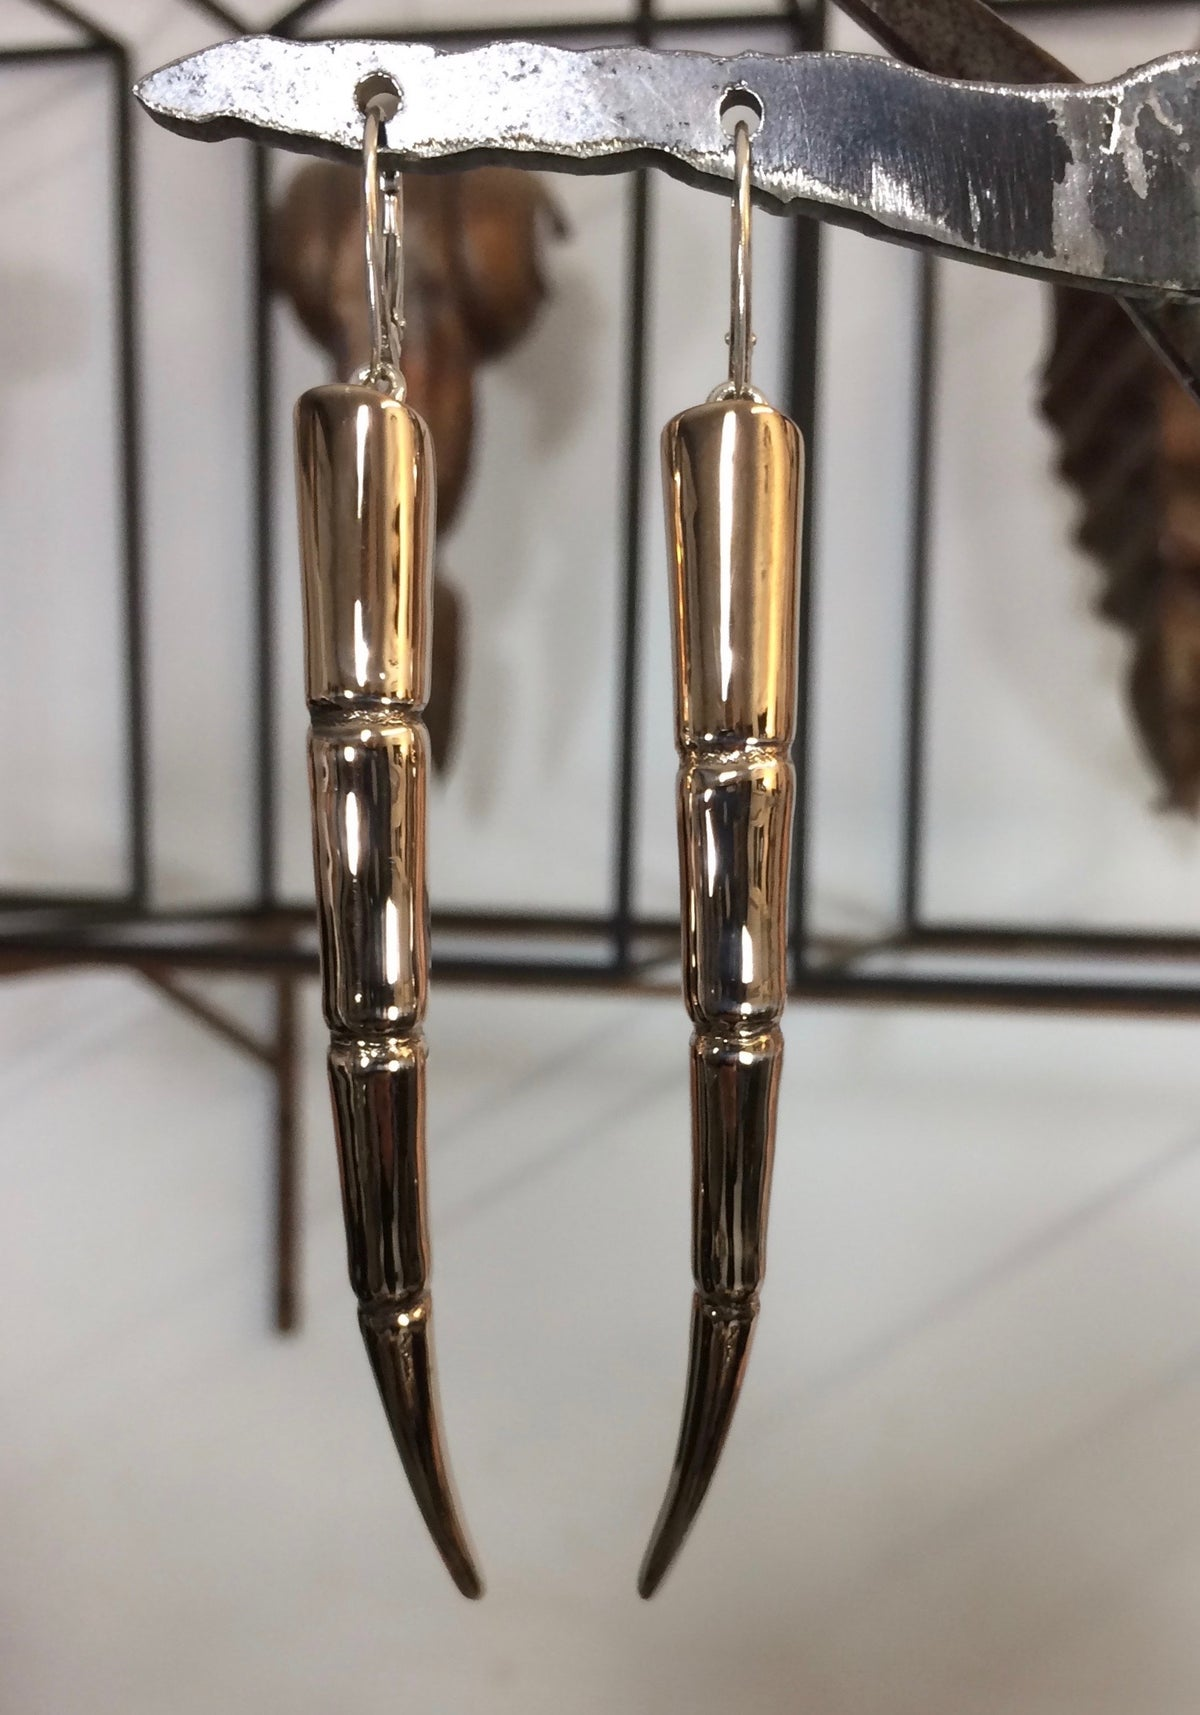 Image of Tendril Earrings, curved